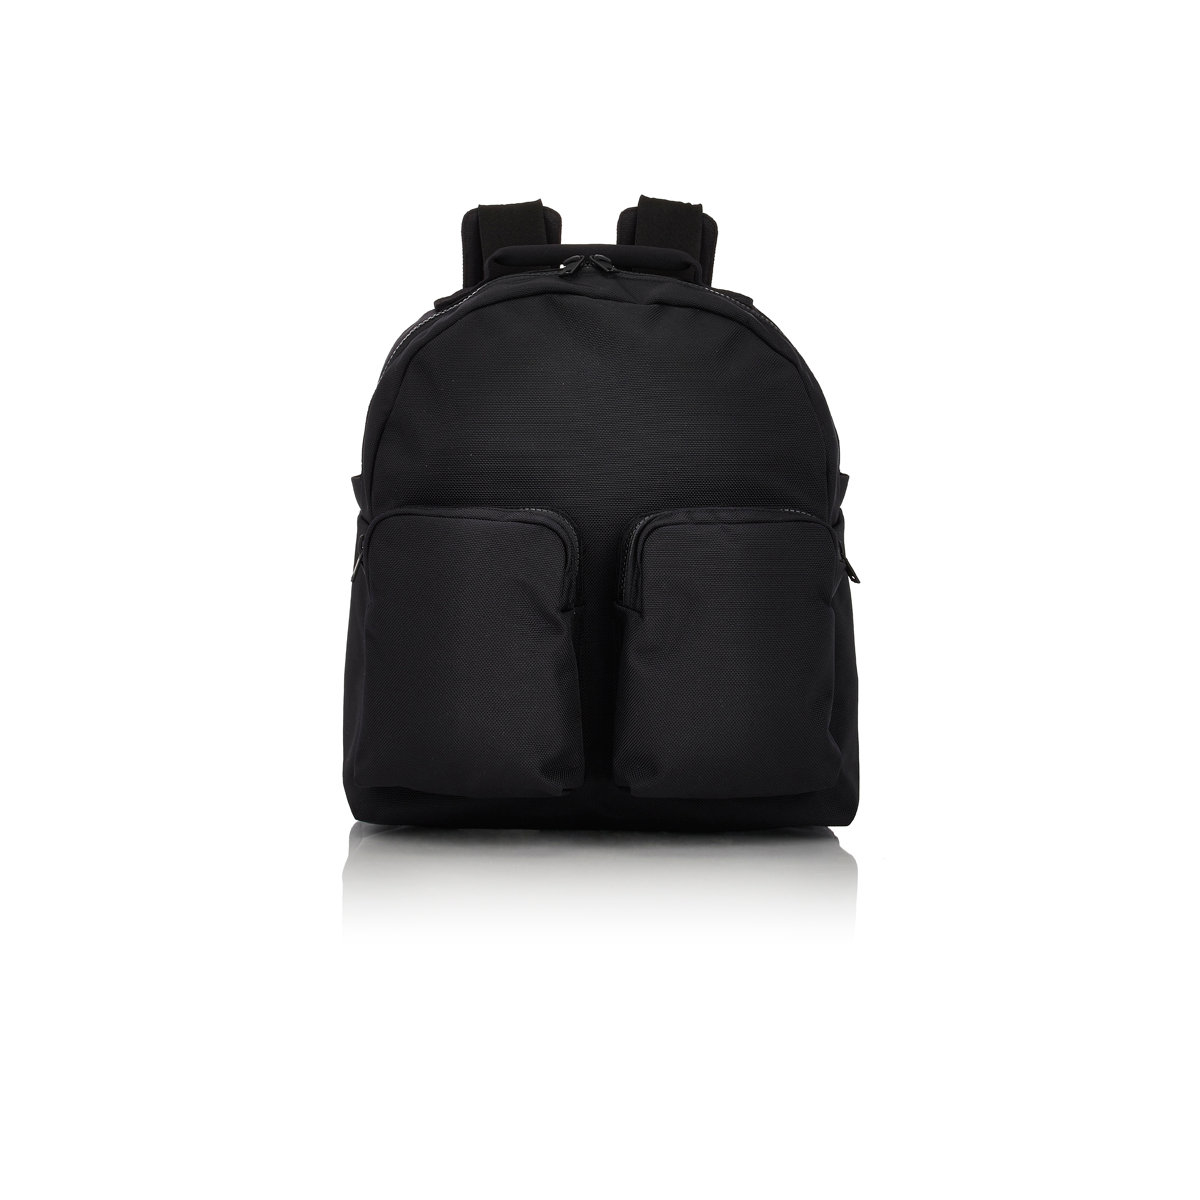 Yeezy Tech fabric Backpack in Black for Men Lyst